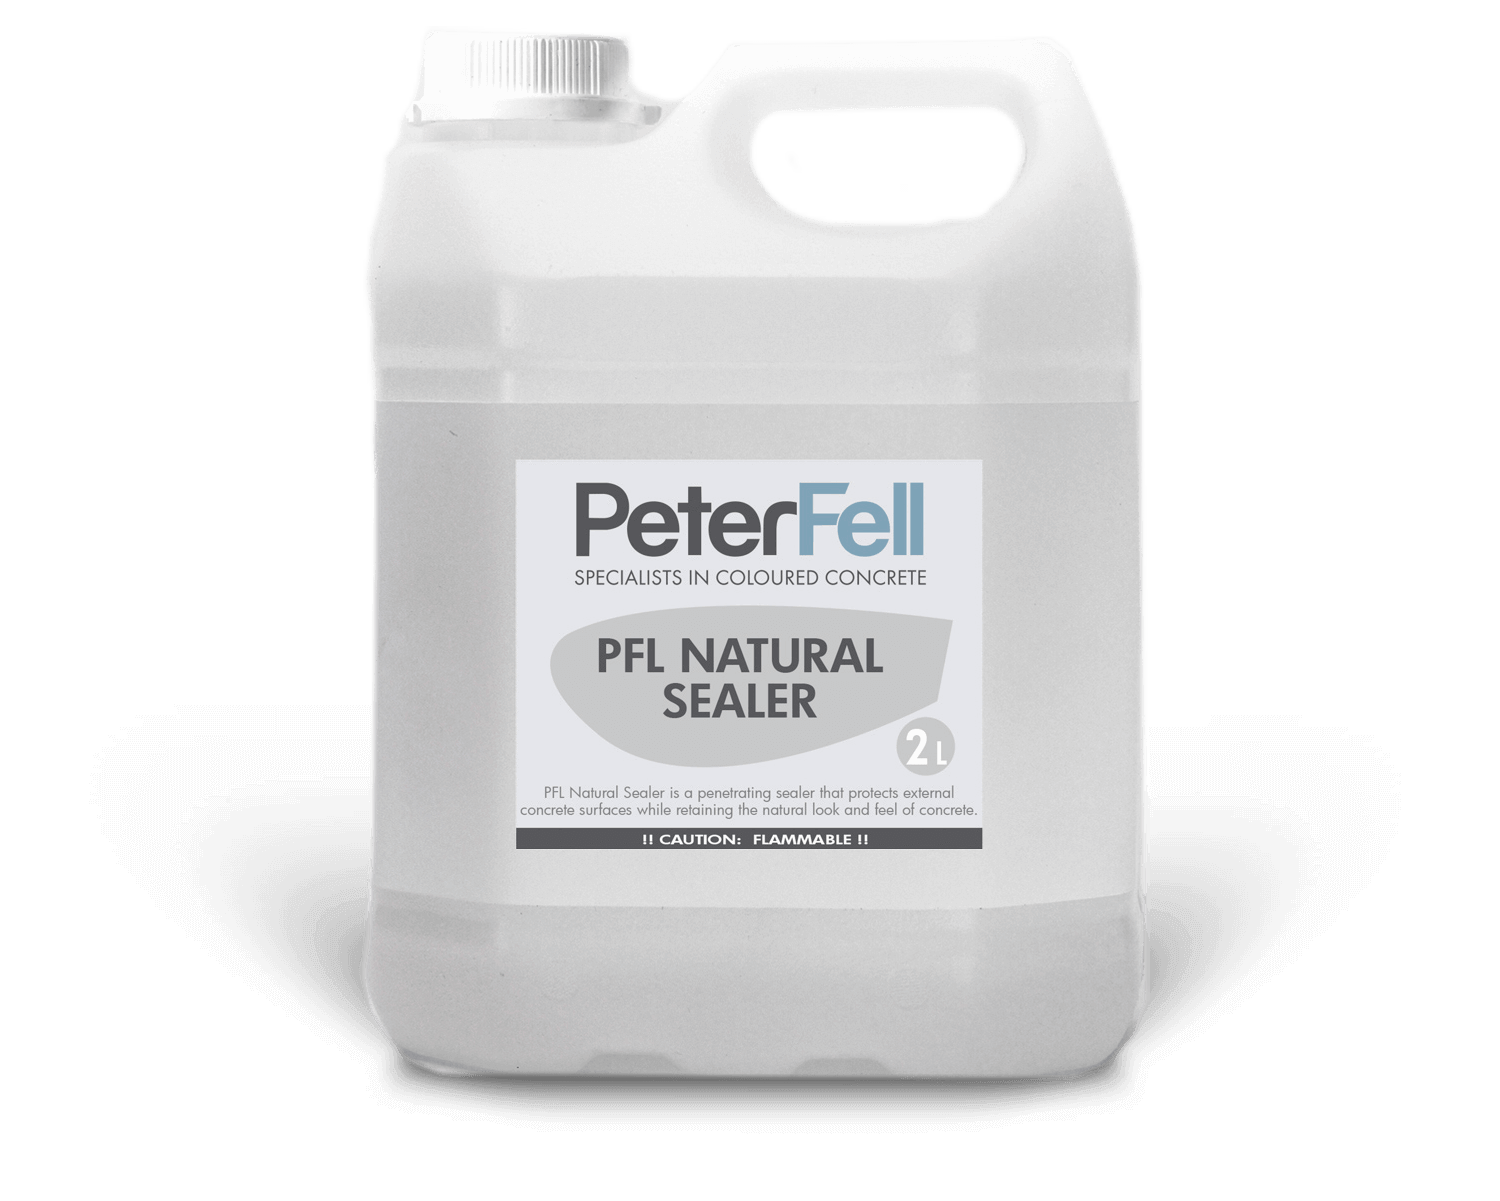 PFL Natural concrete sealer